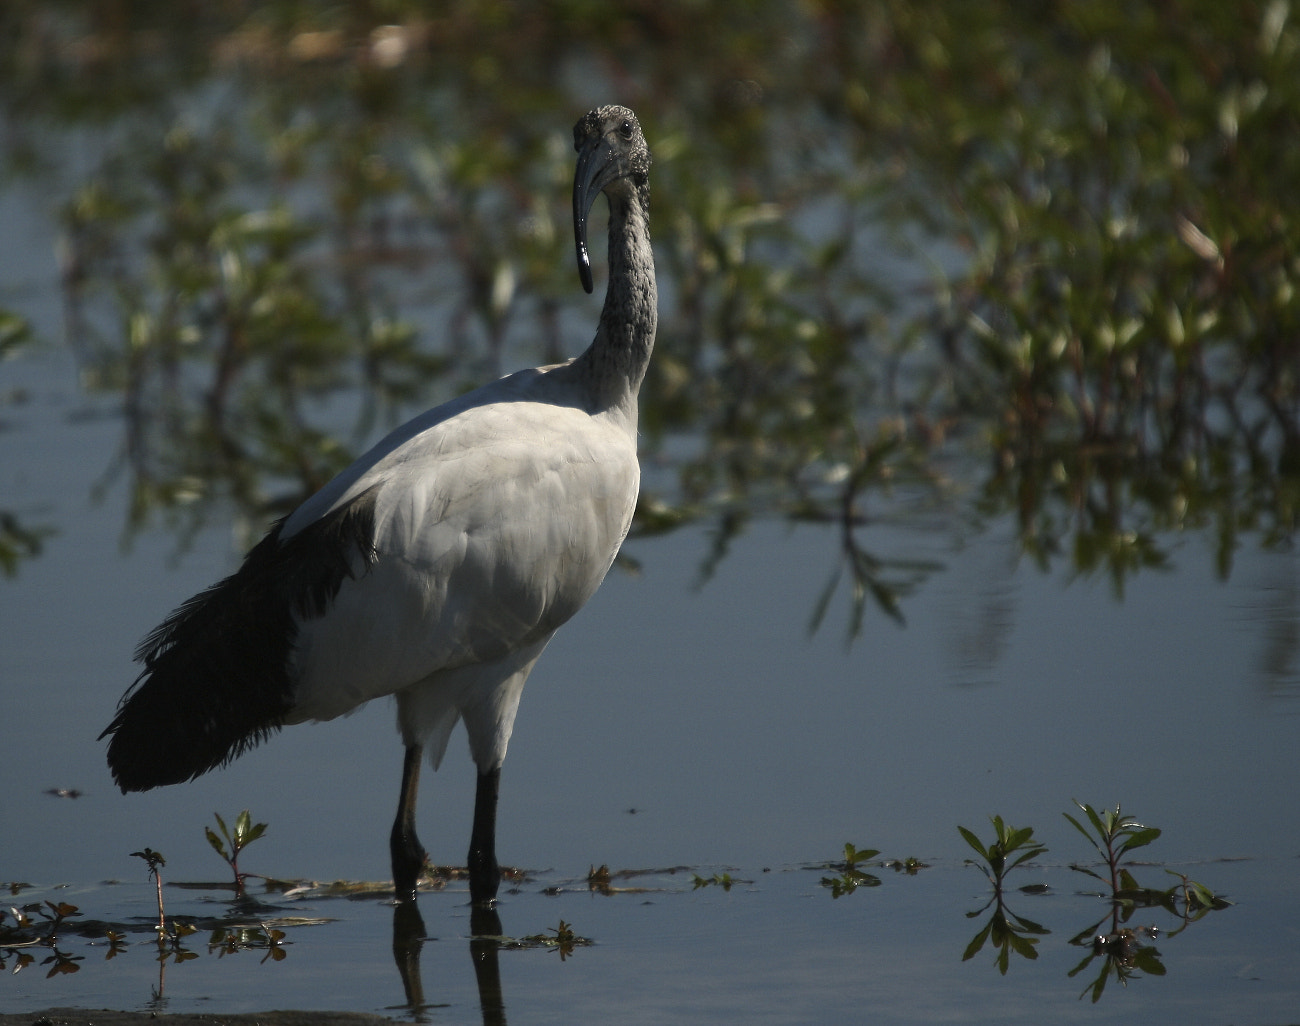 Photograph Ibis by Henk Botha on 500px